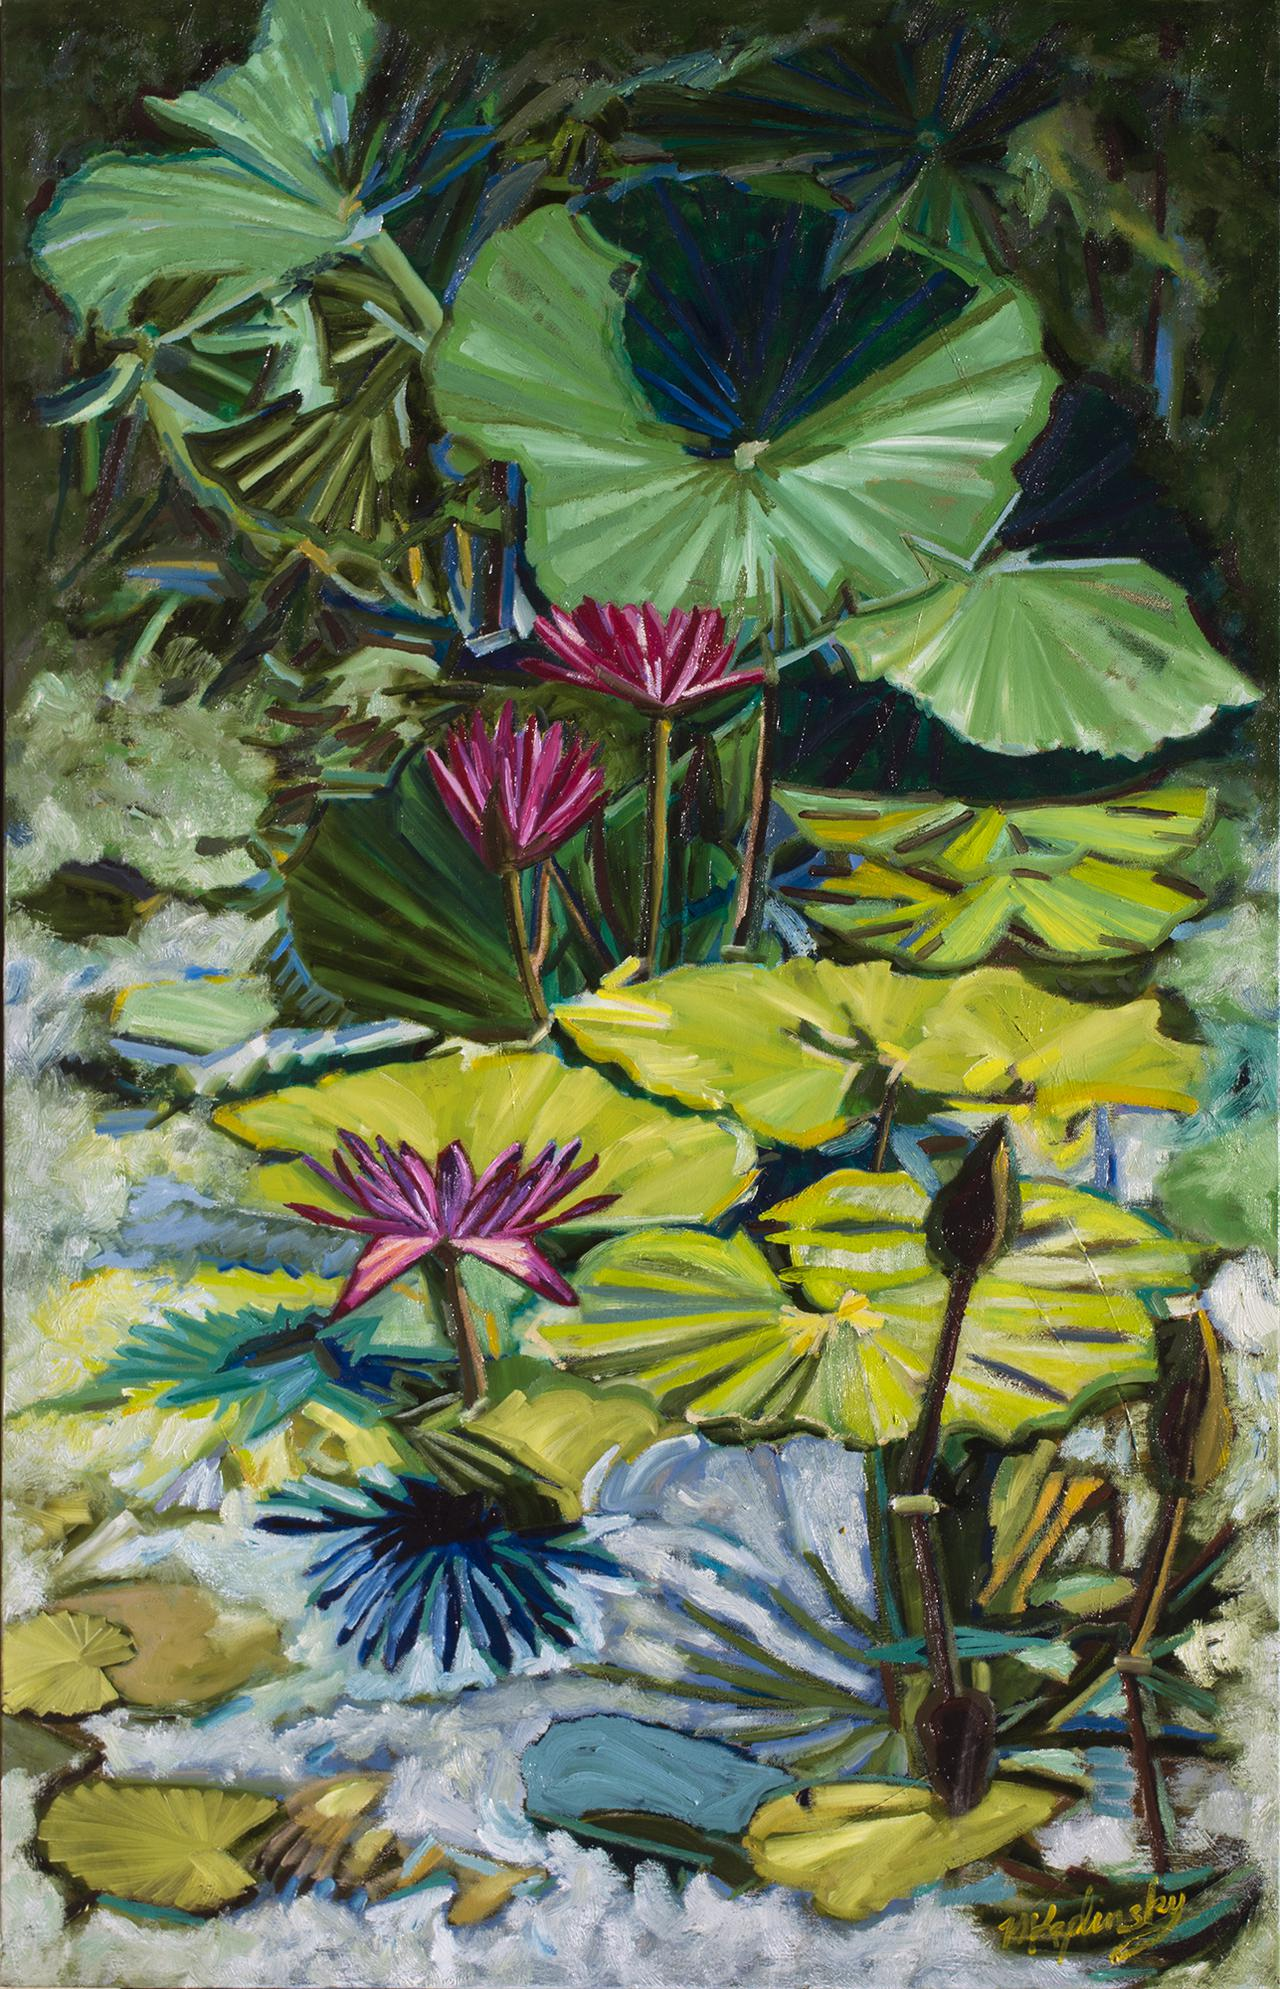 Lotus and Lilies_ oil on canvas_ 30x48 inches artwork by Matt Kaplinsky